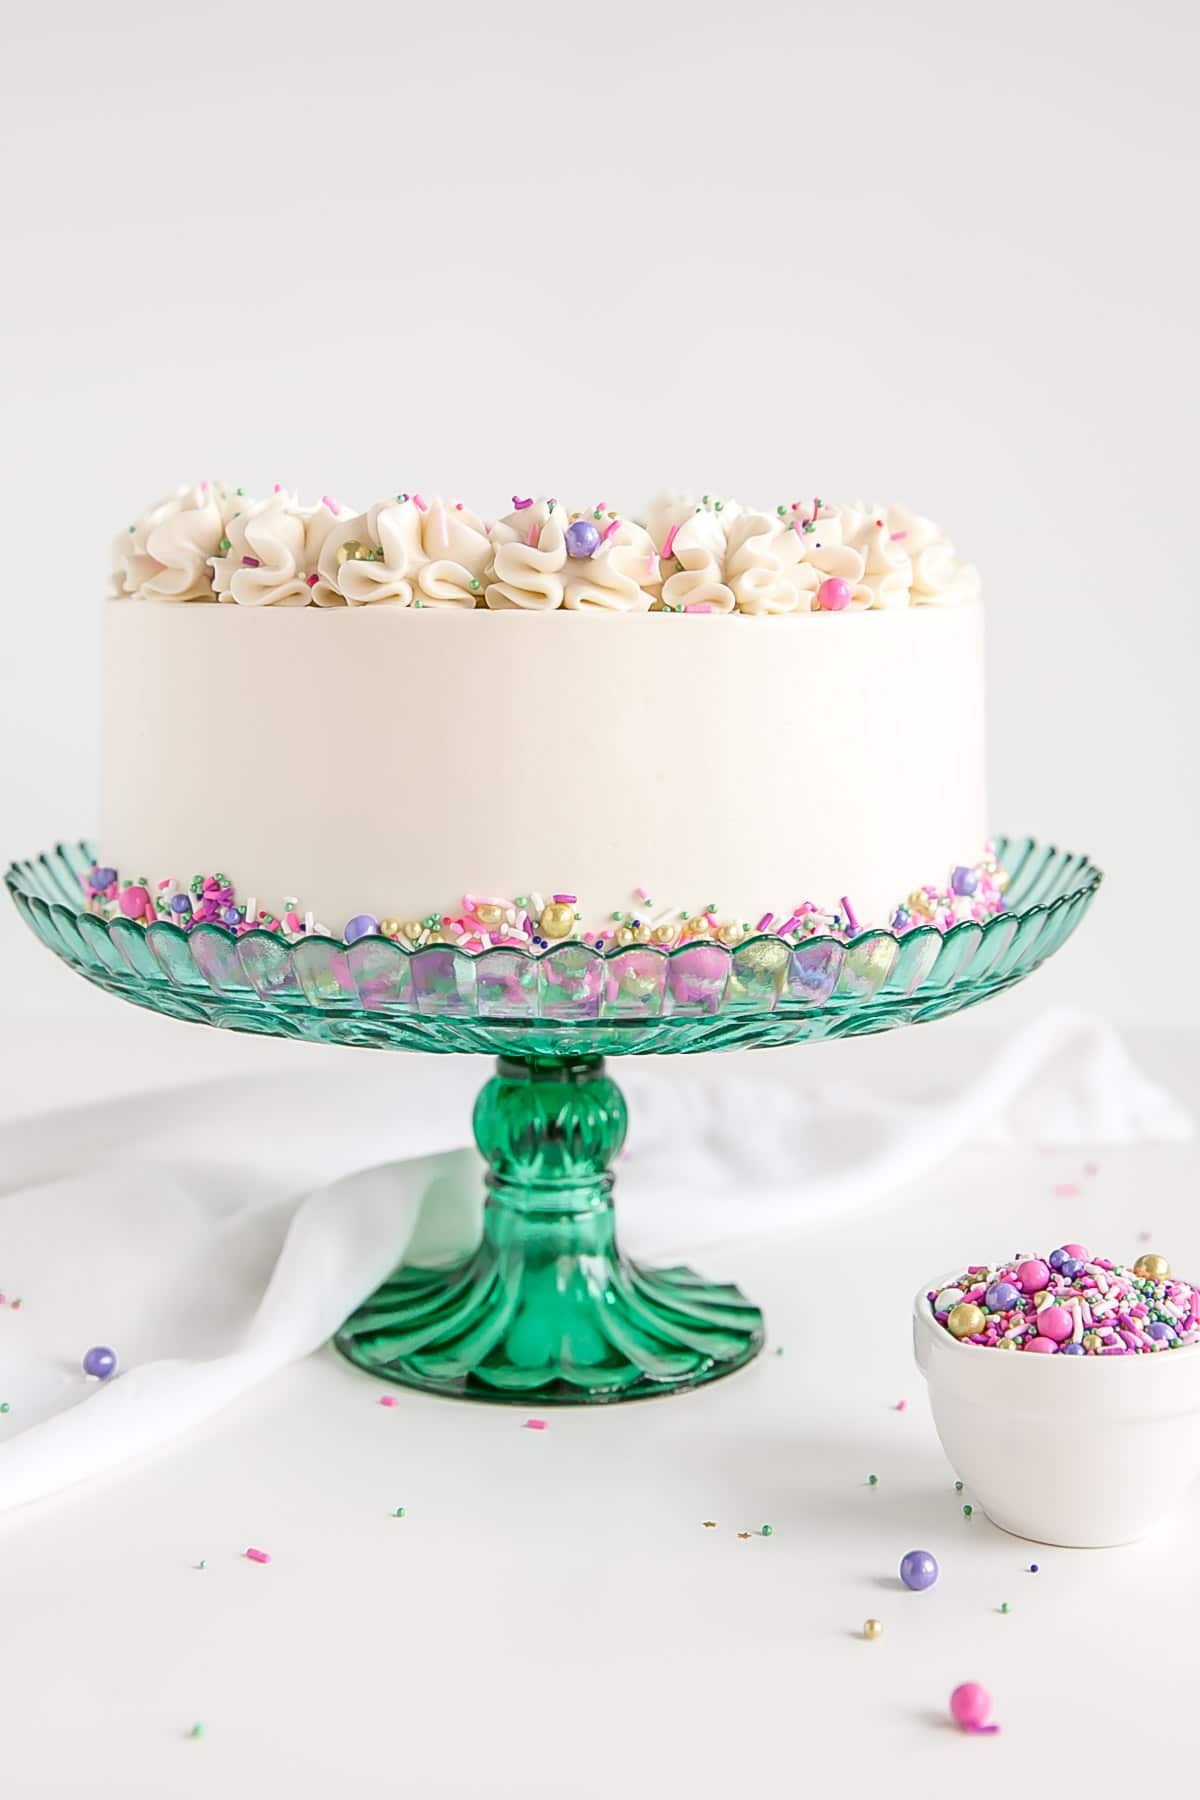 Profile shot of white cake with white buttercream and sprinkles.